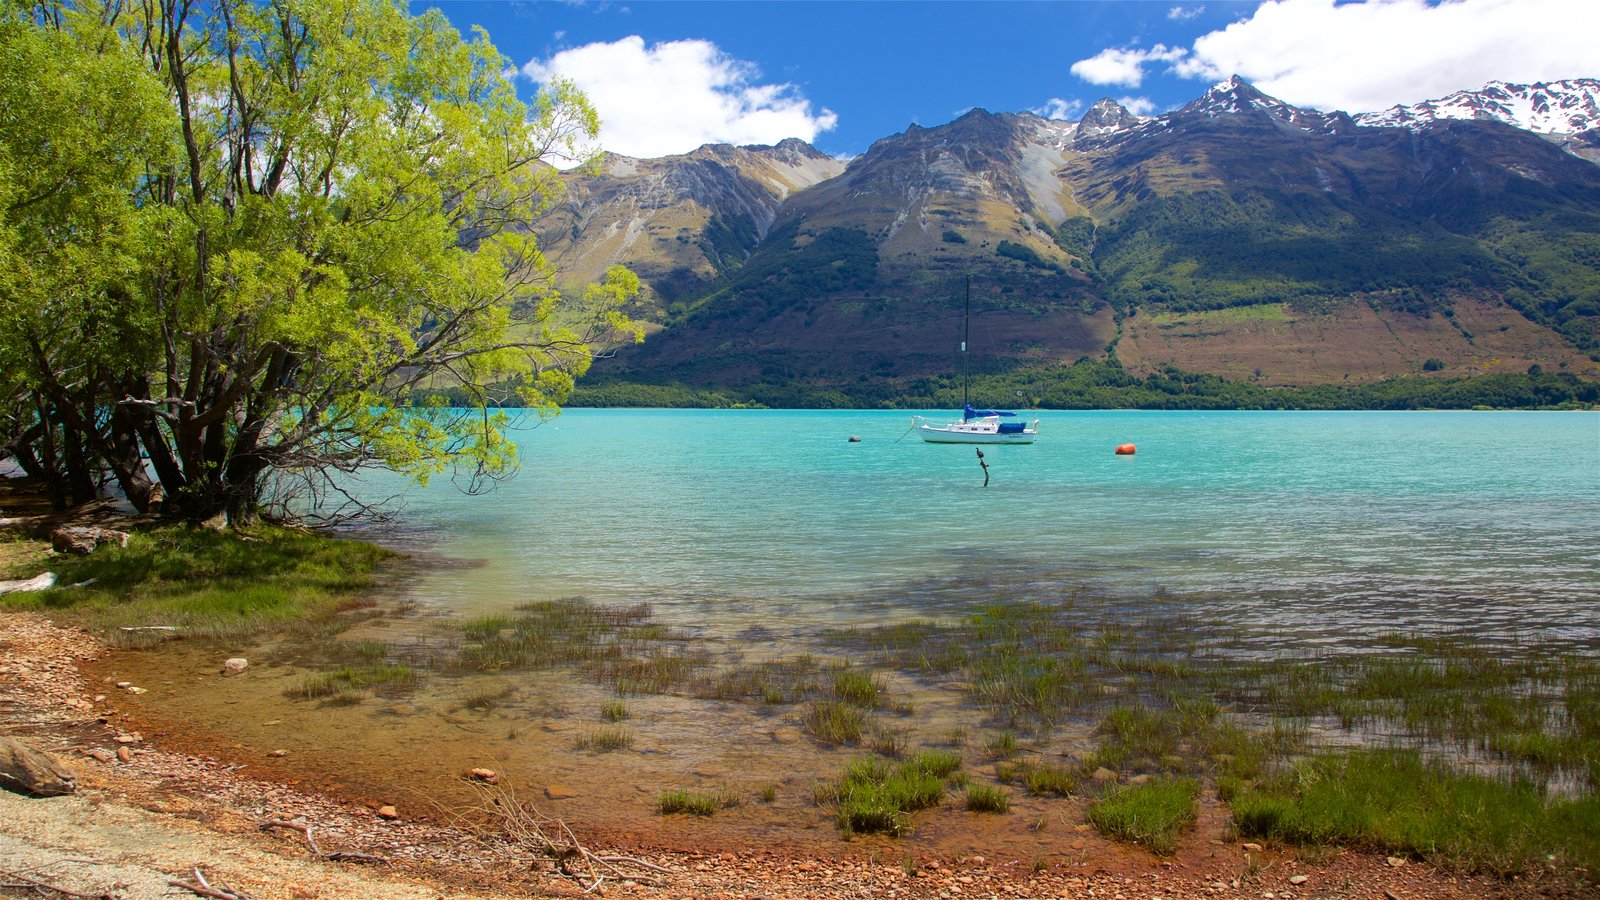 Glenorchy which includes sailing, mountains and a lake or waterhole